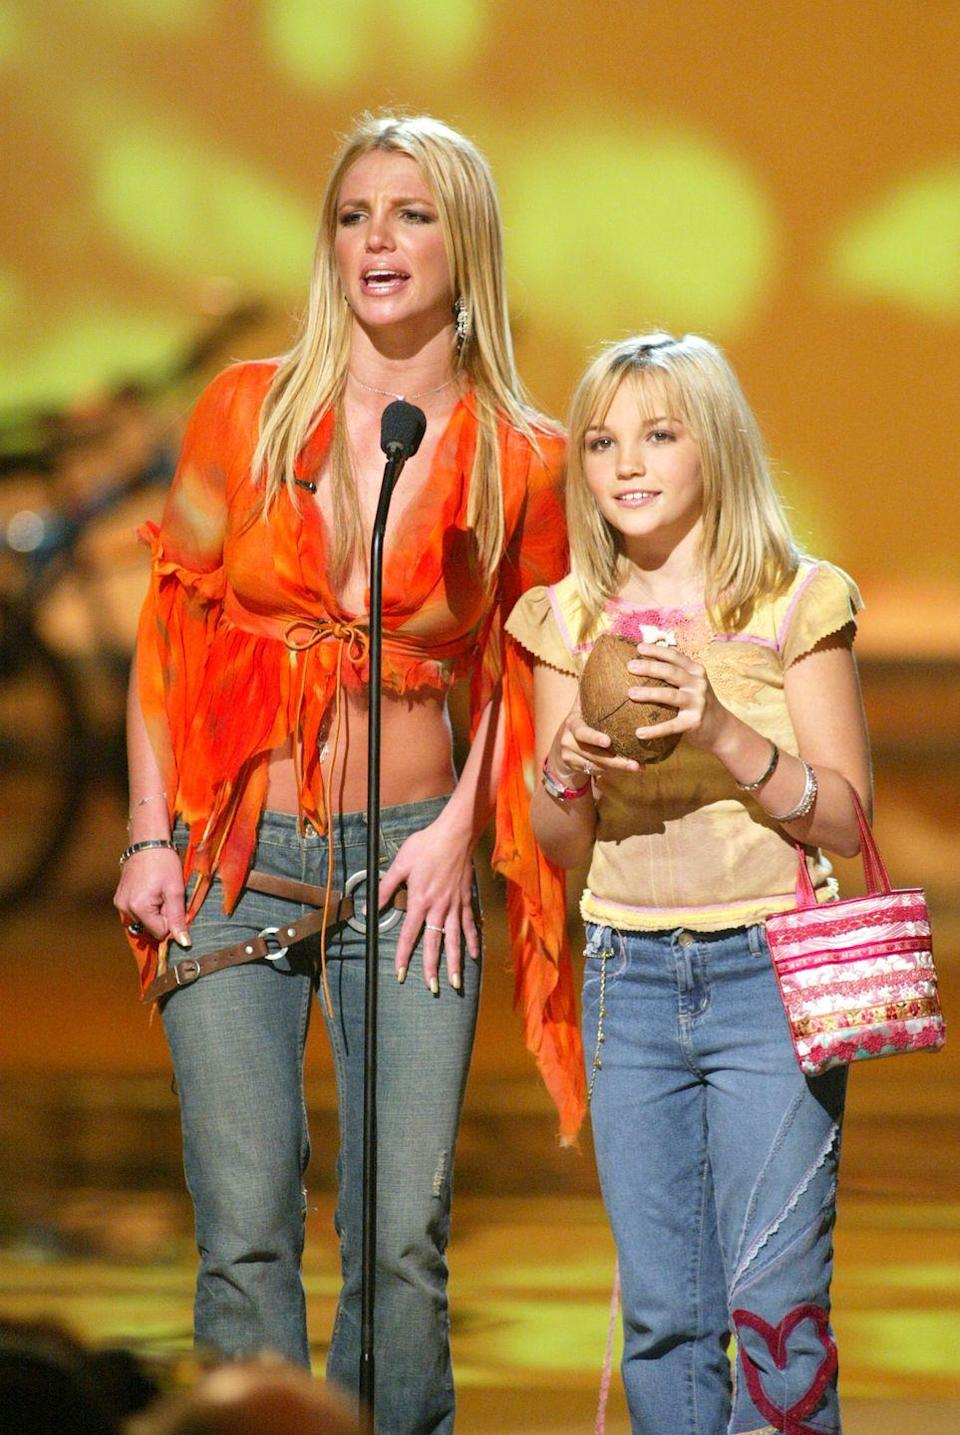 <p>Get down with your bad self (and your cute handbag), Jamie Lynn Spears!</p>